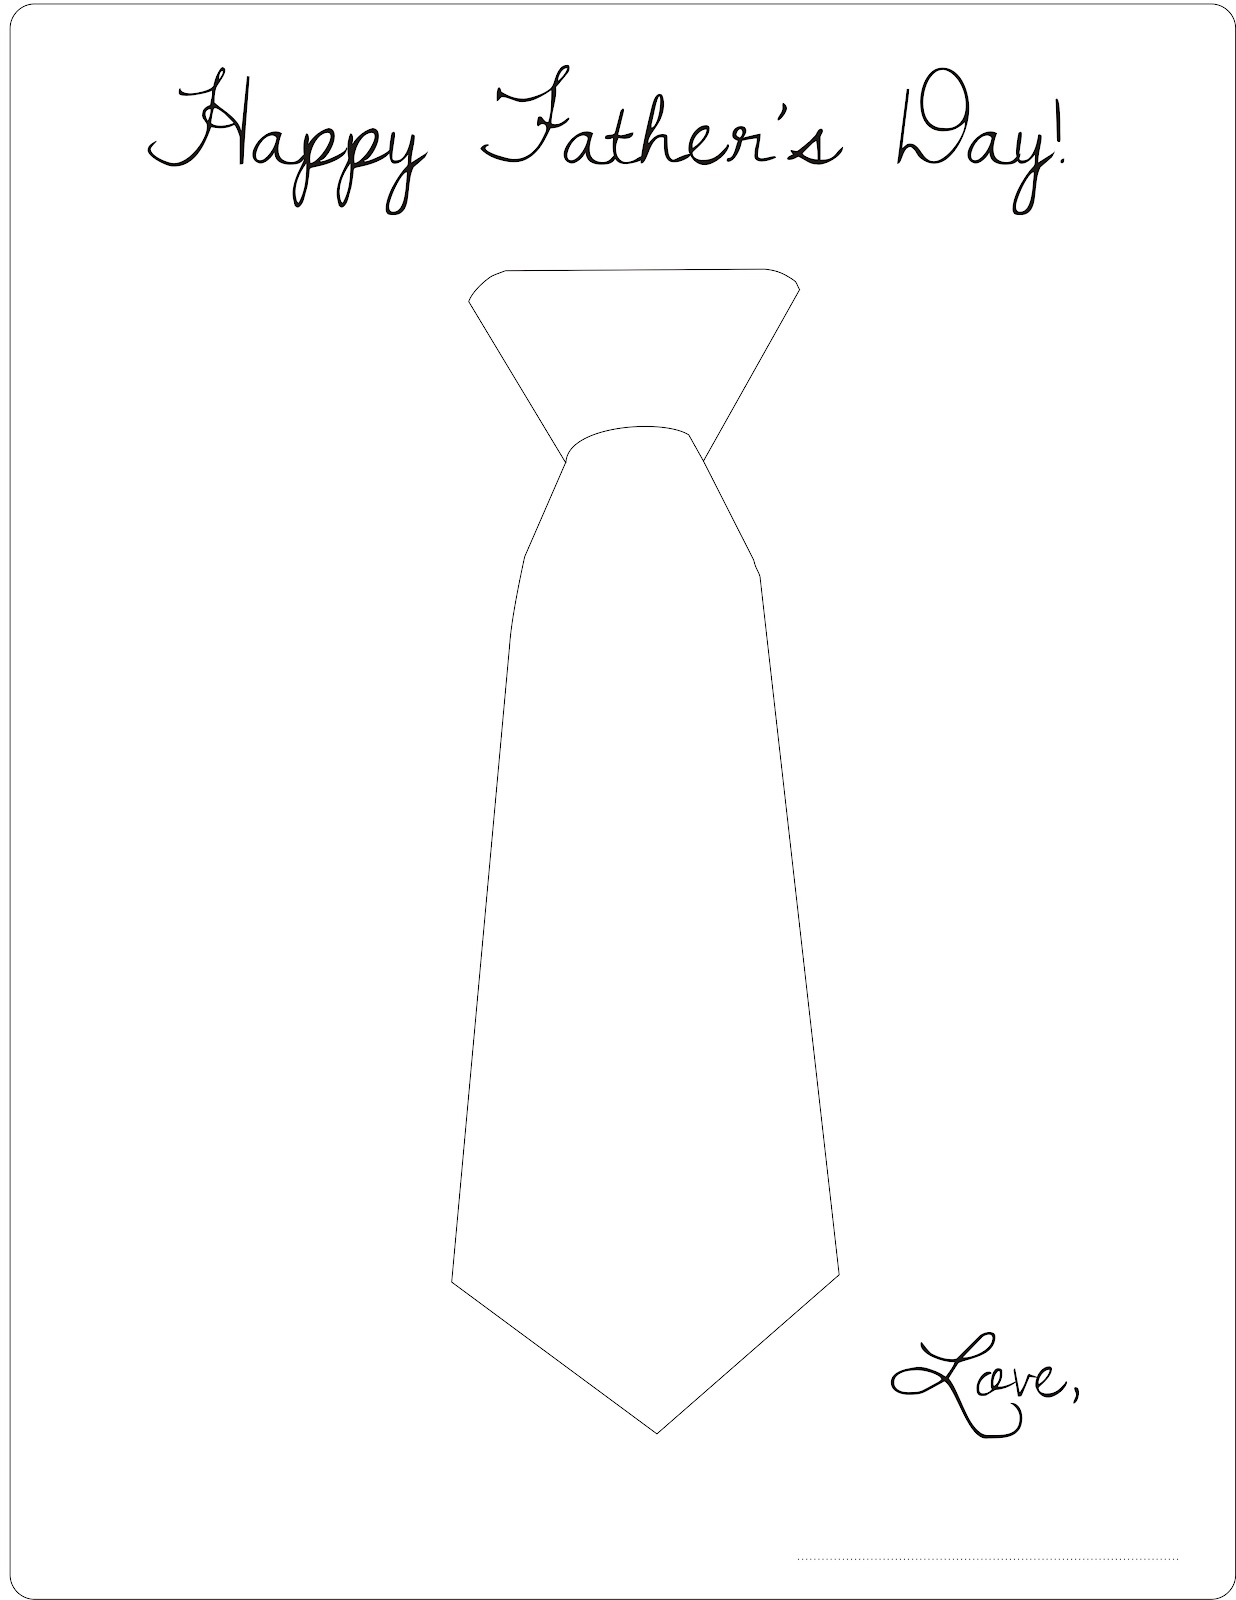 fathers day coloring pages of ties | Free Printable - Father's Day Coloring Page